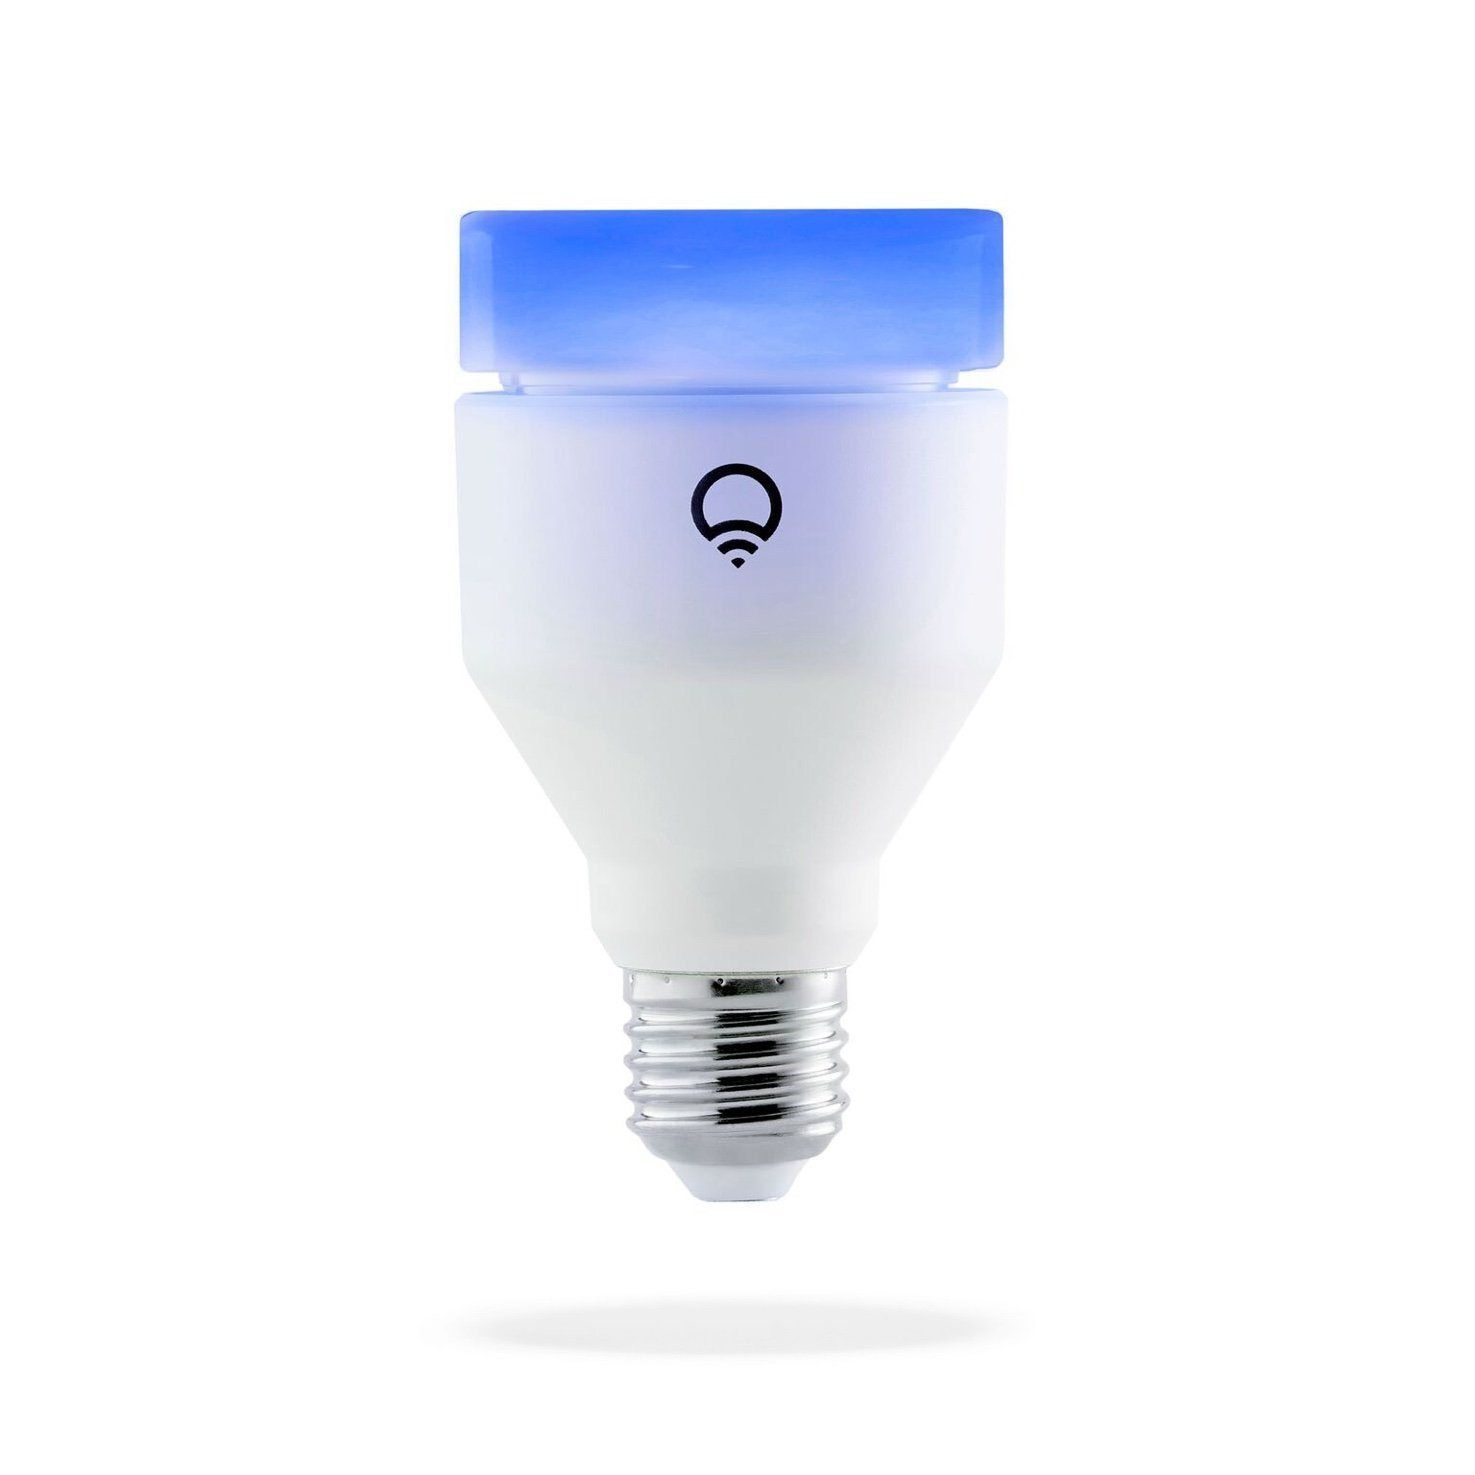 Led Smart Wifi Bulb A19 Led Smart Bulb White Rgb E26 7w Equivalent 60w Work With Alexa Siri And Google Assistant Without Hub For Ressidential Light Bulb